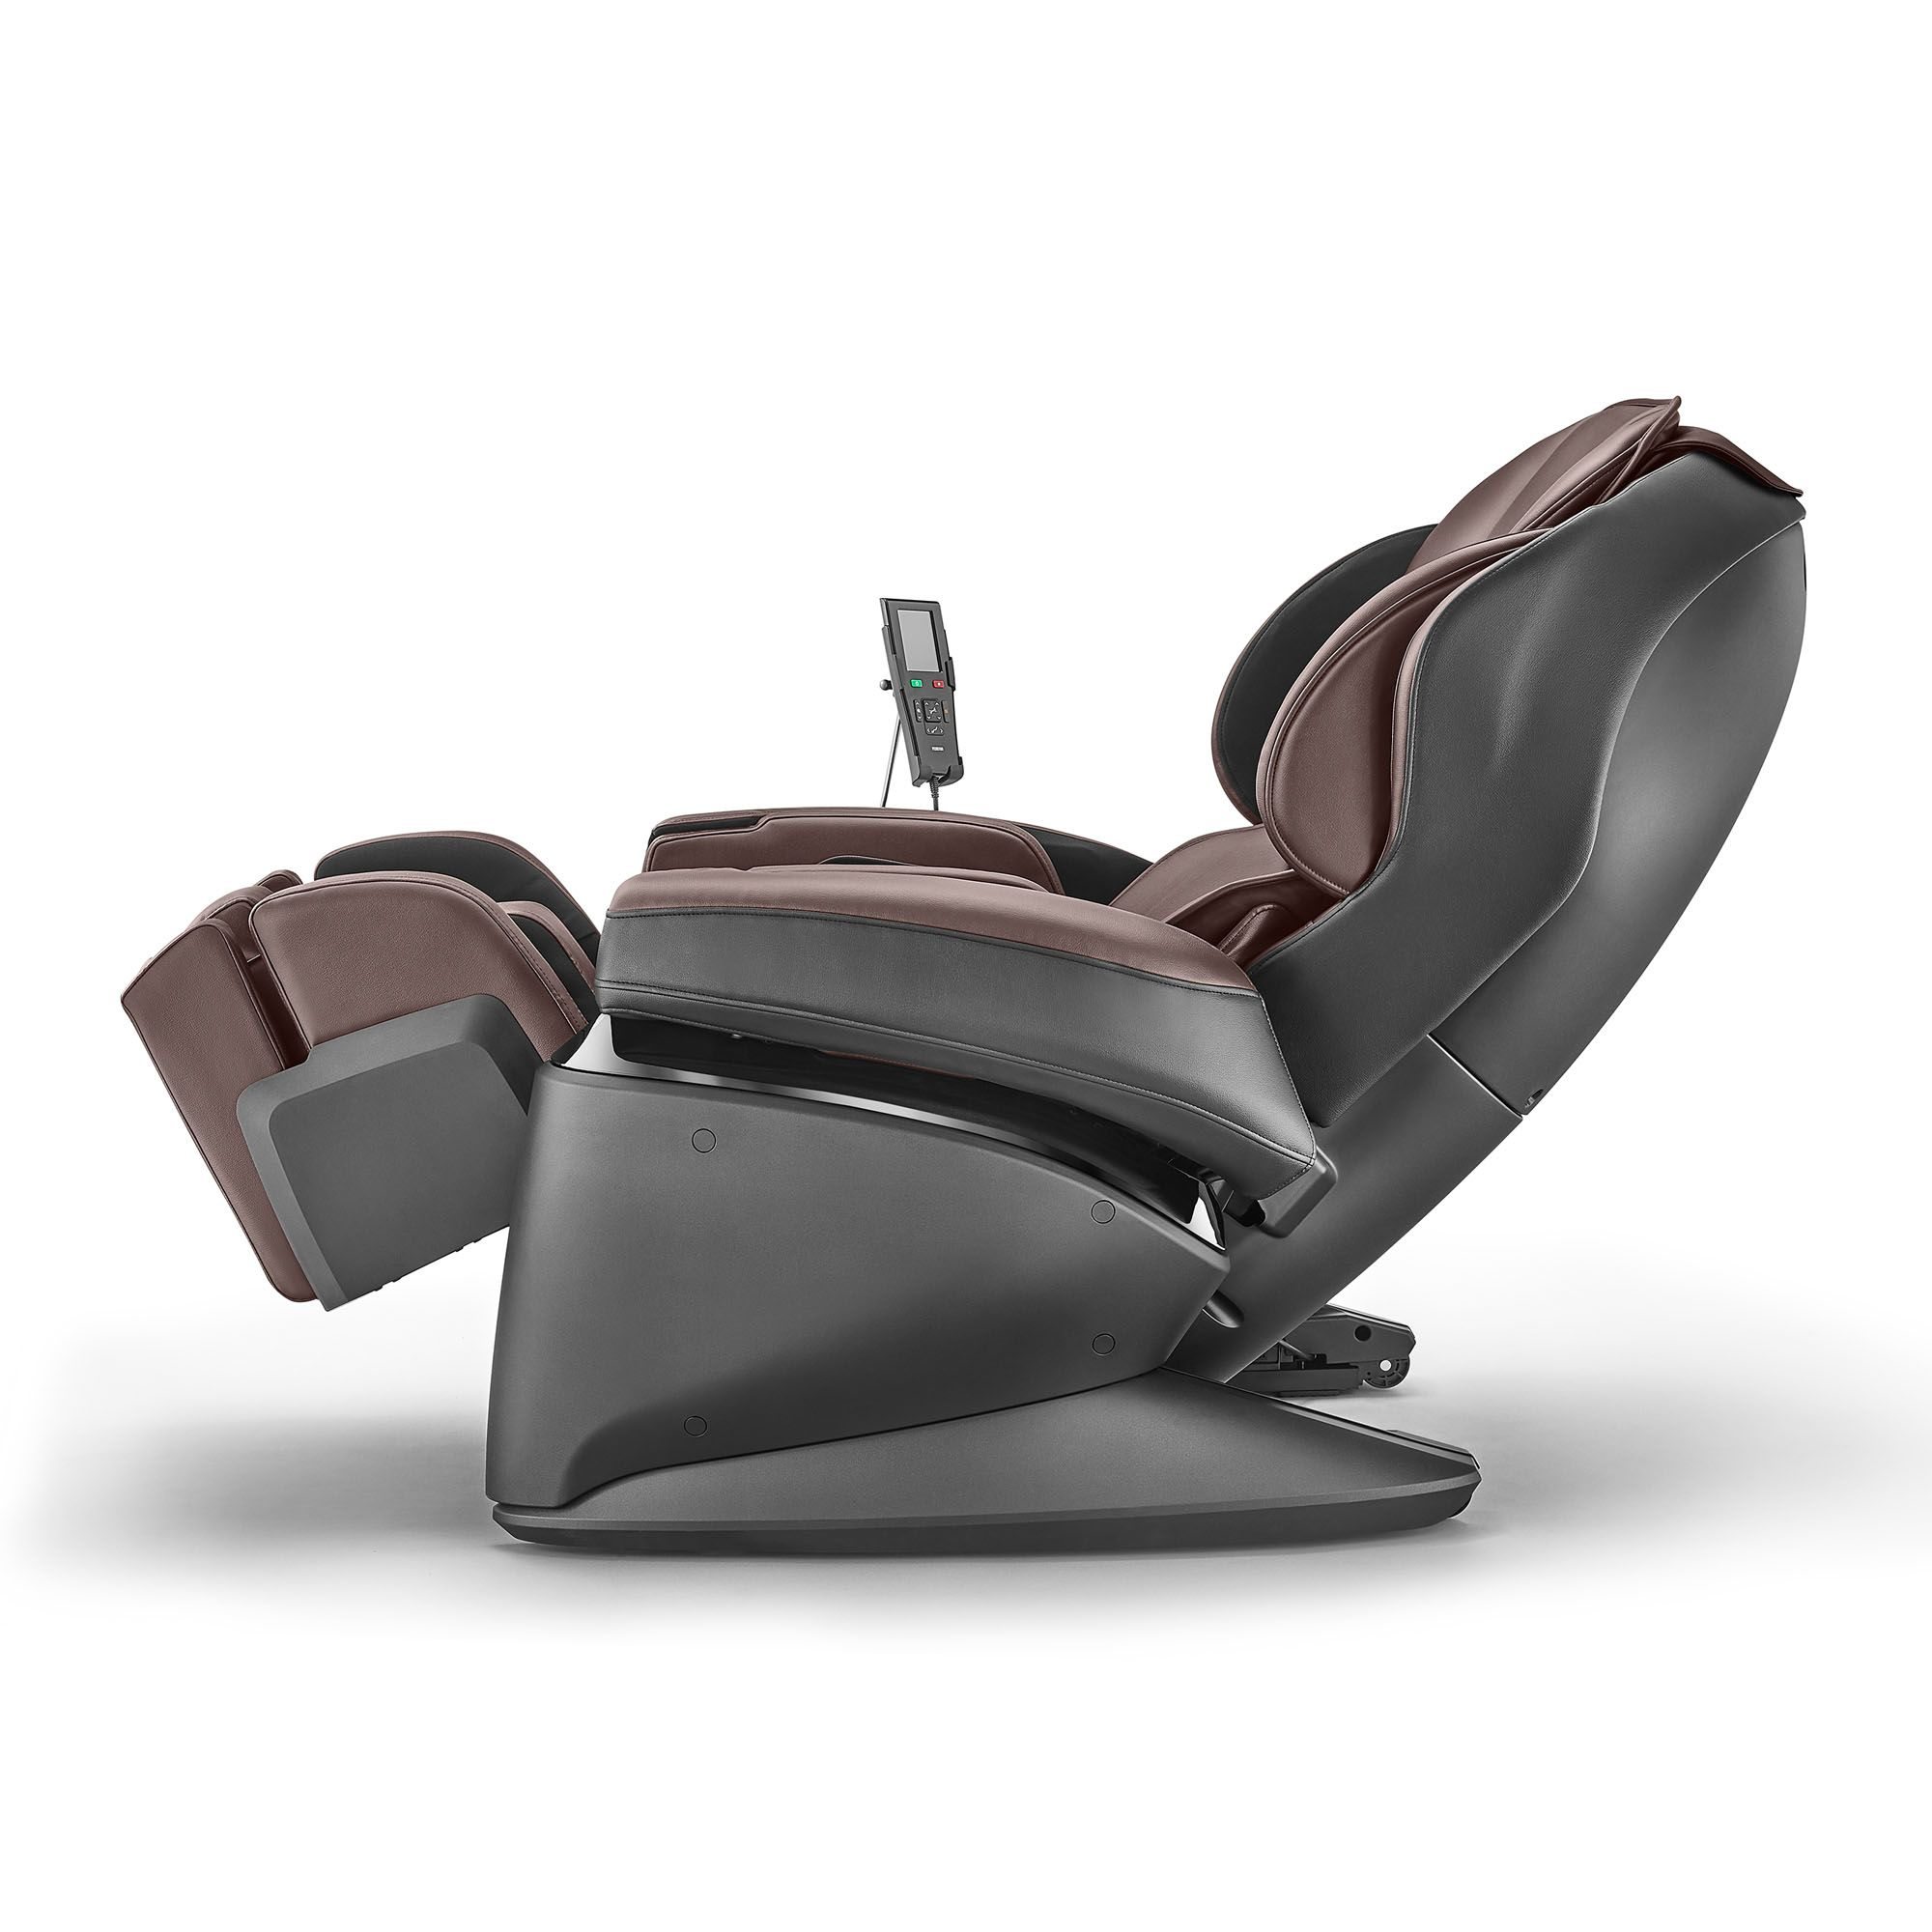 The Chiropractor's Choice as Best Massage Recliner for the spine